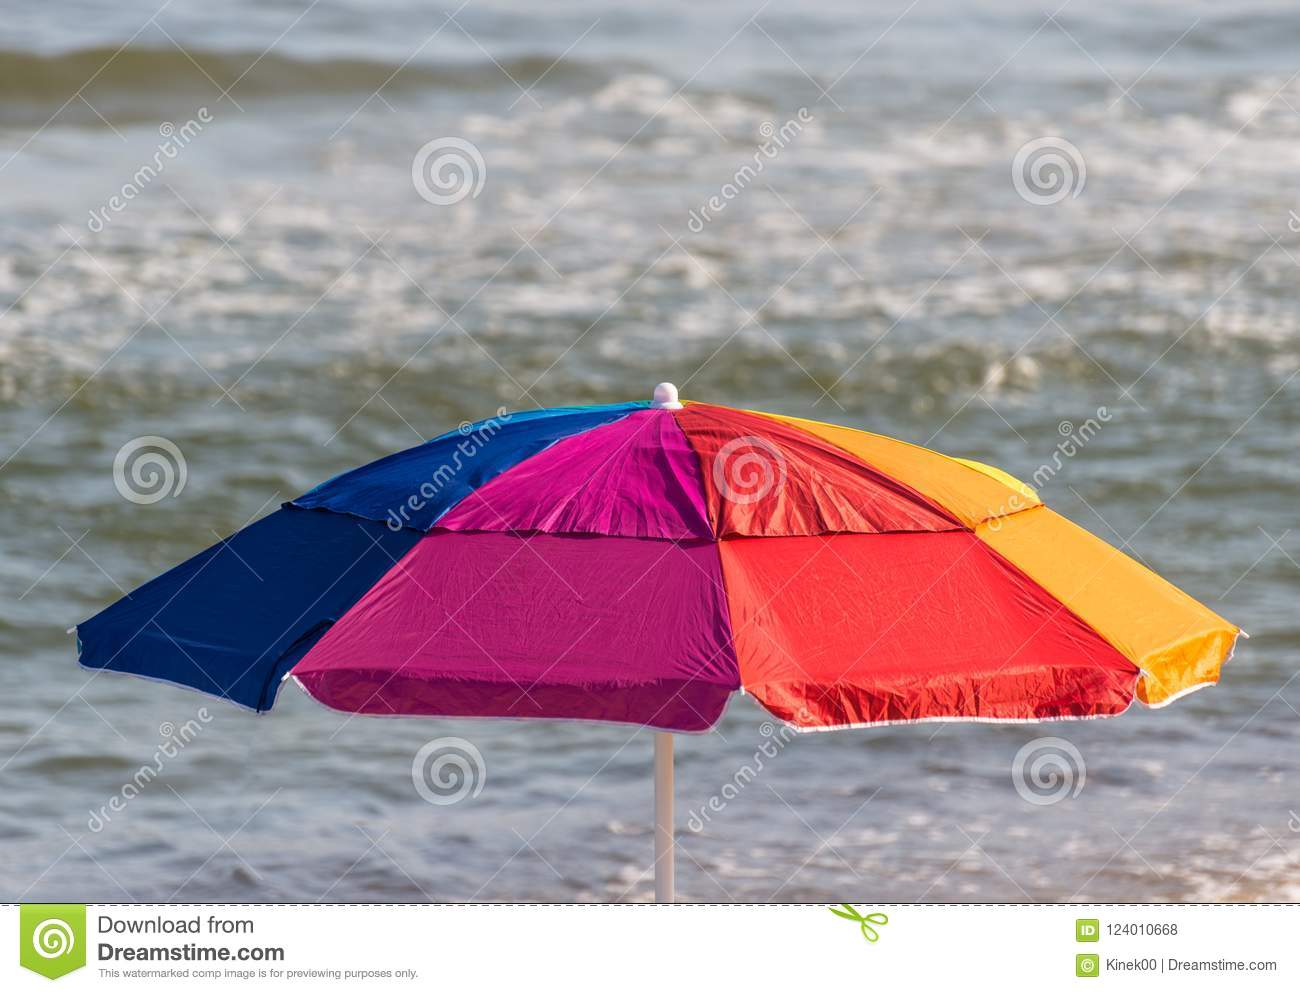 A colorful umbrella spread out on the beach on a beautiful sunny summer day with a rough sea.